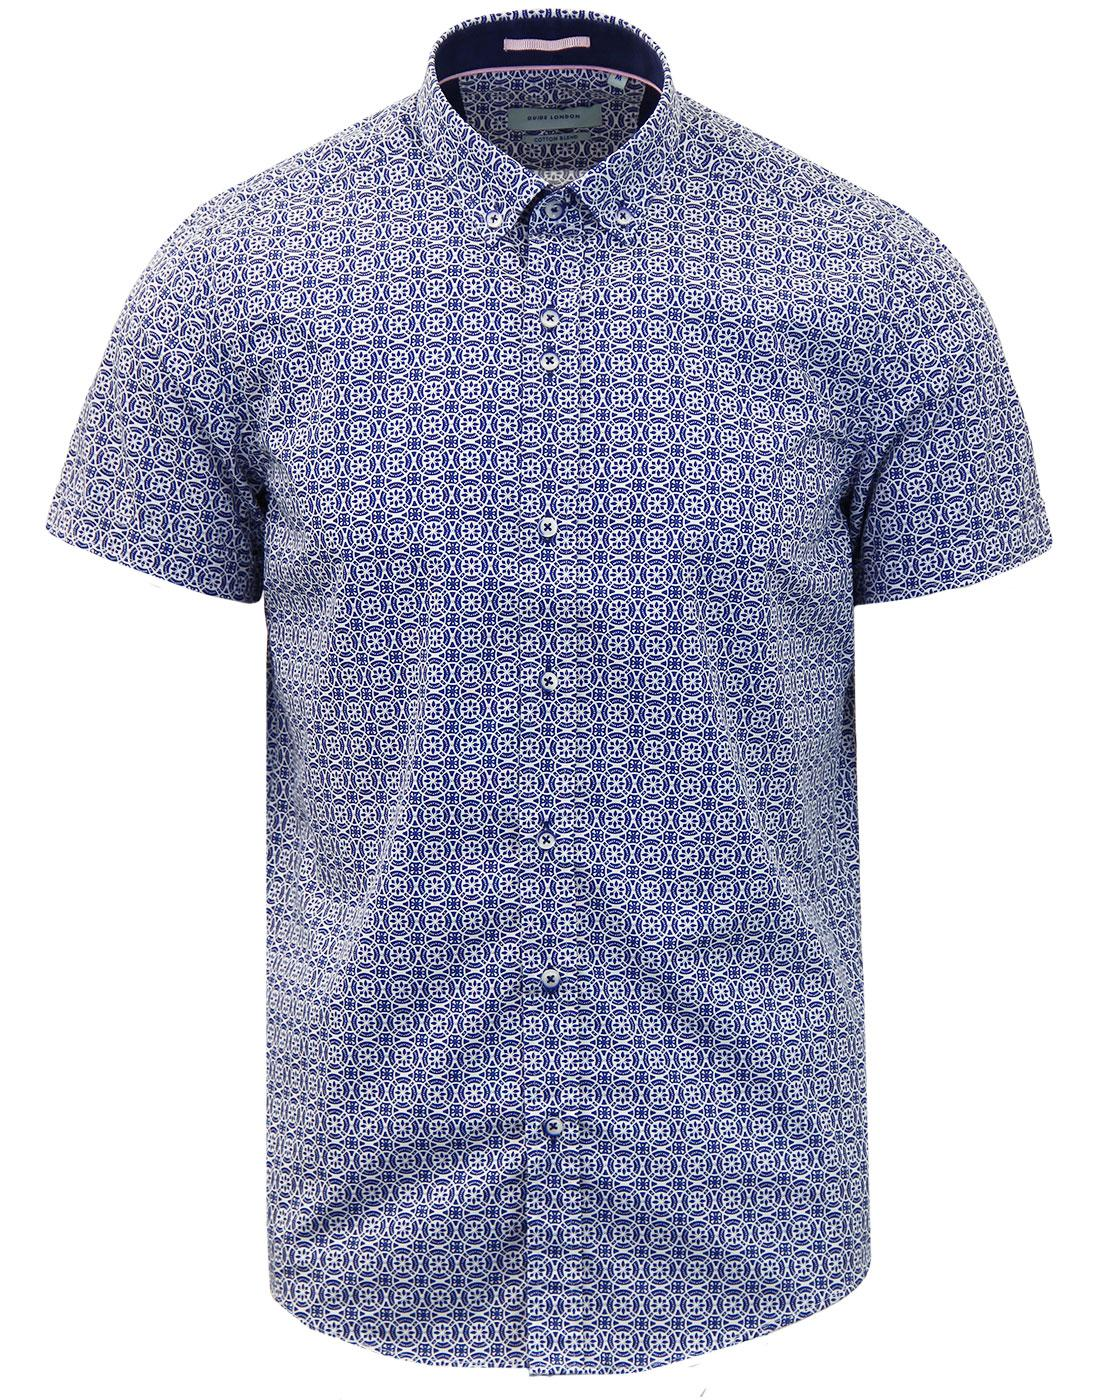 GUIDE LONDON Coin Mosaic Mod Short Sleeve Shirt